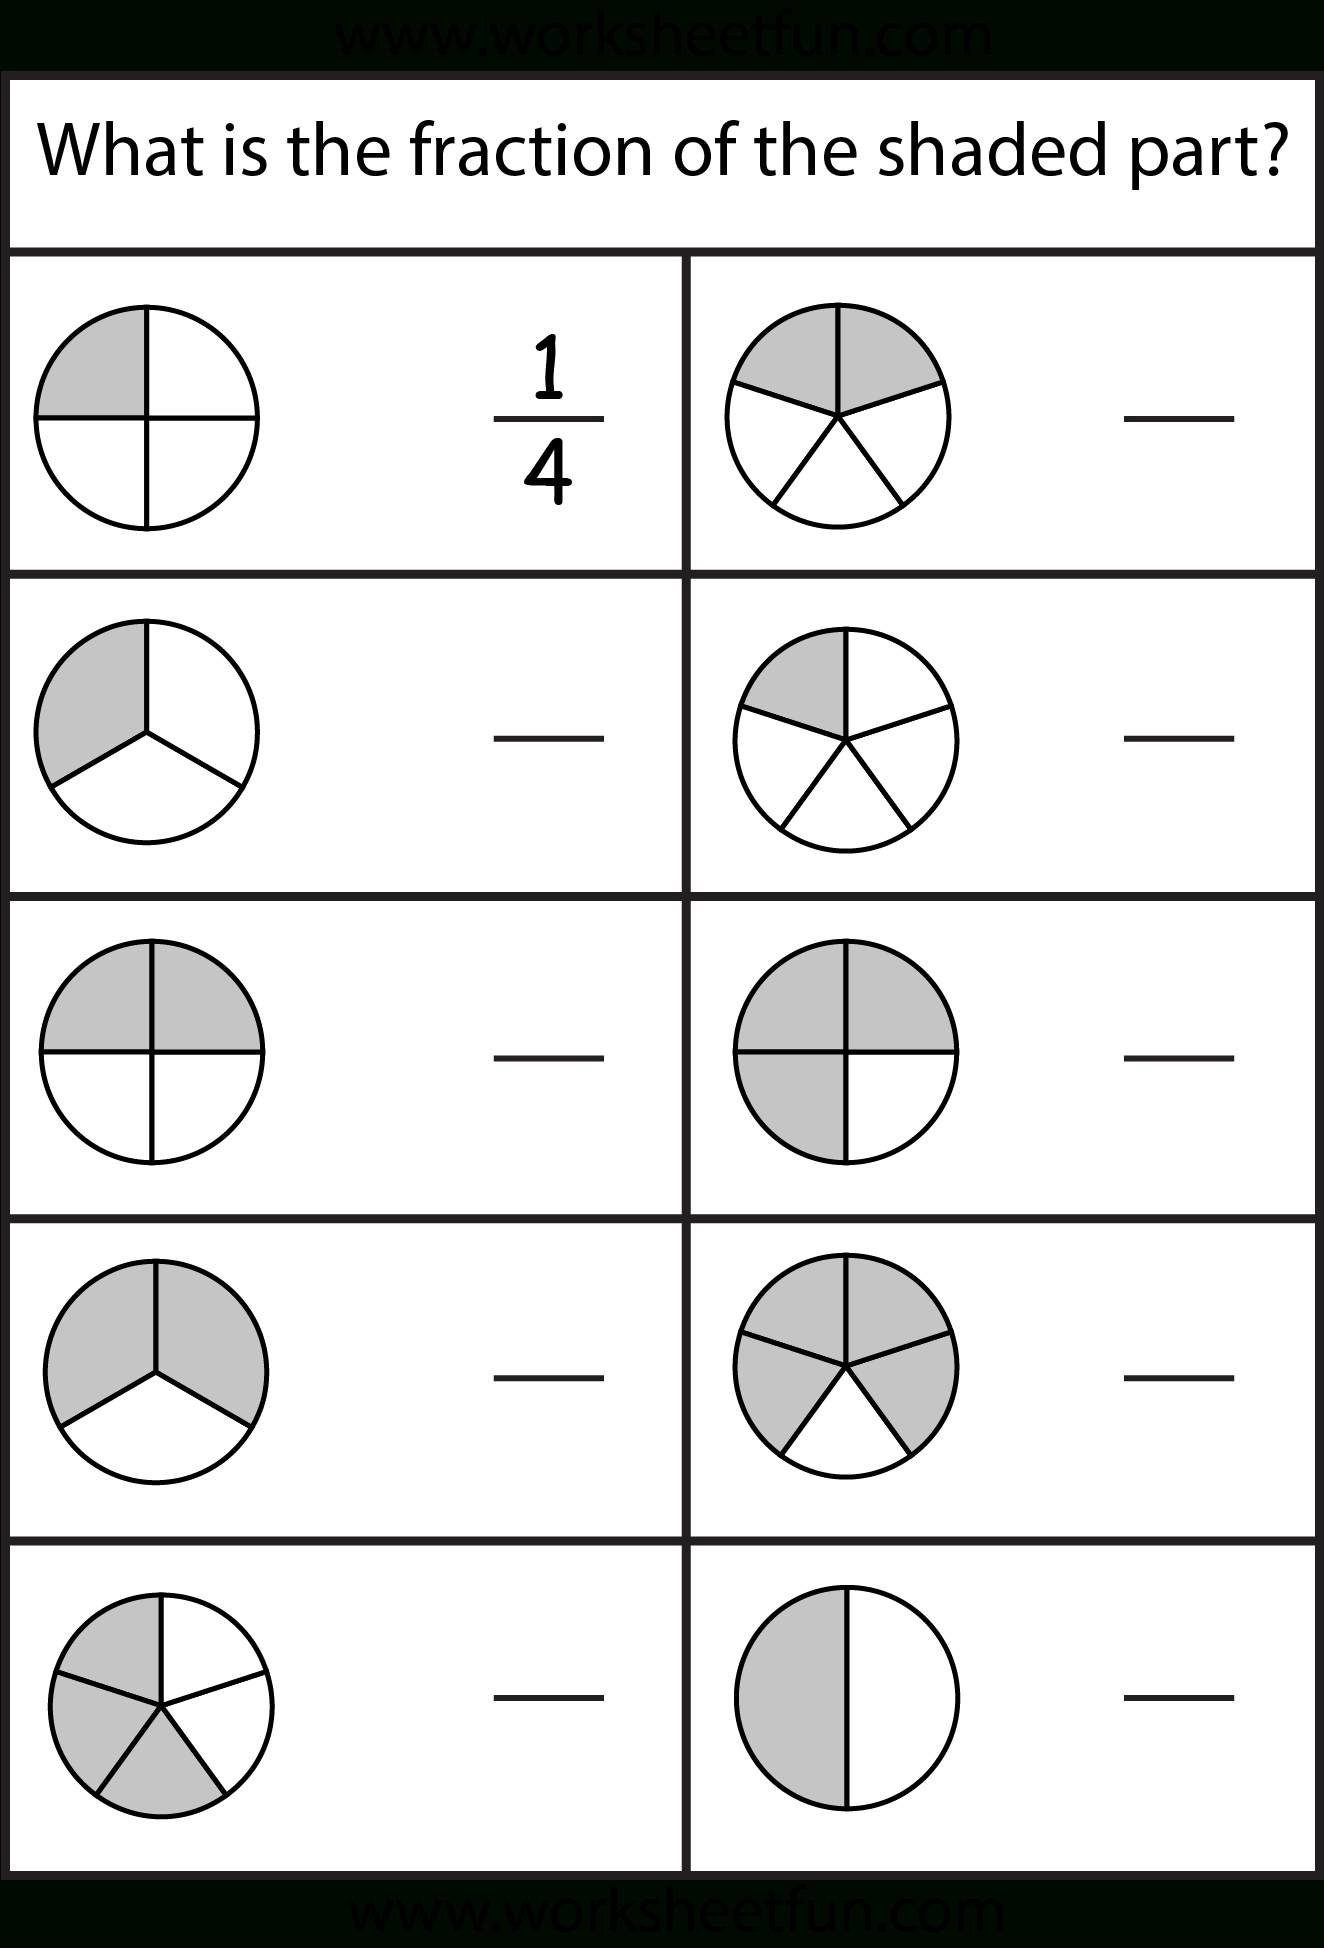 Equivalent Fractions Worksheet / Free Printable Worksheets - Free Printable Fraction Worksheets